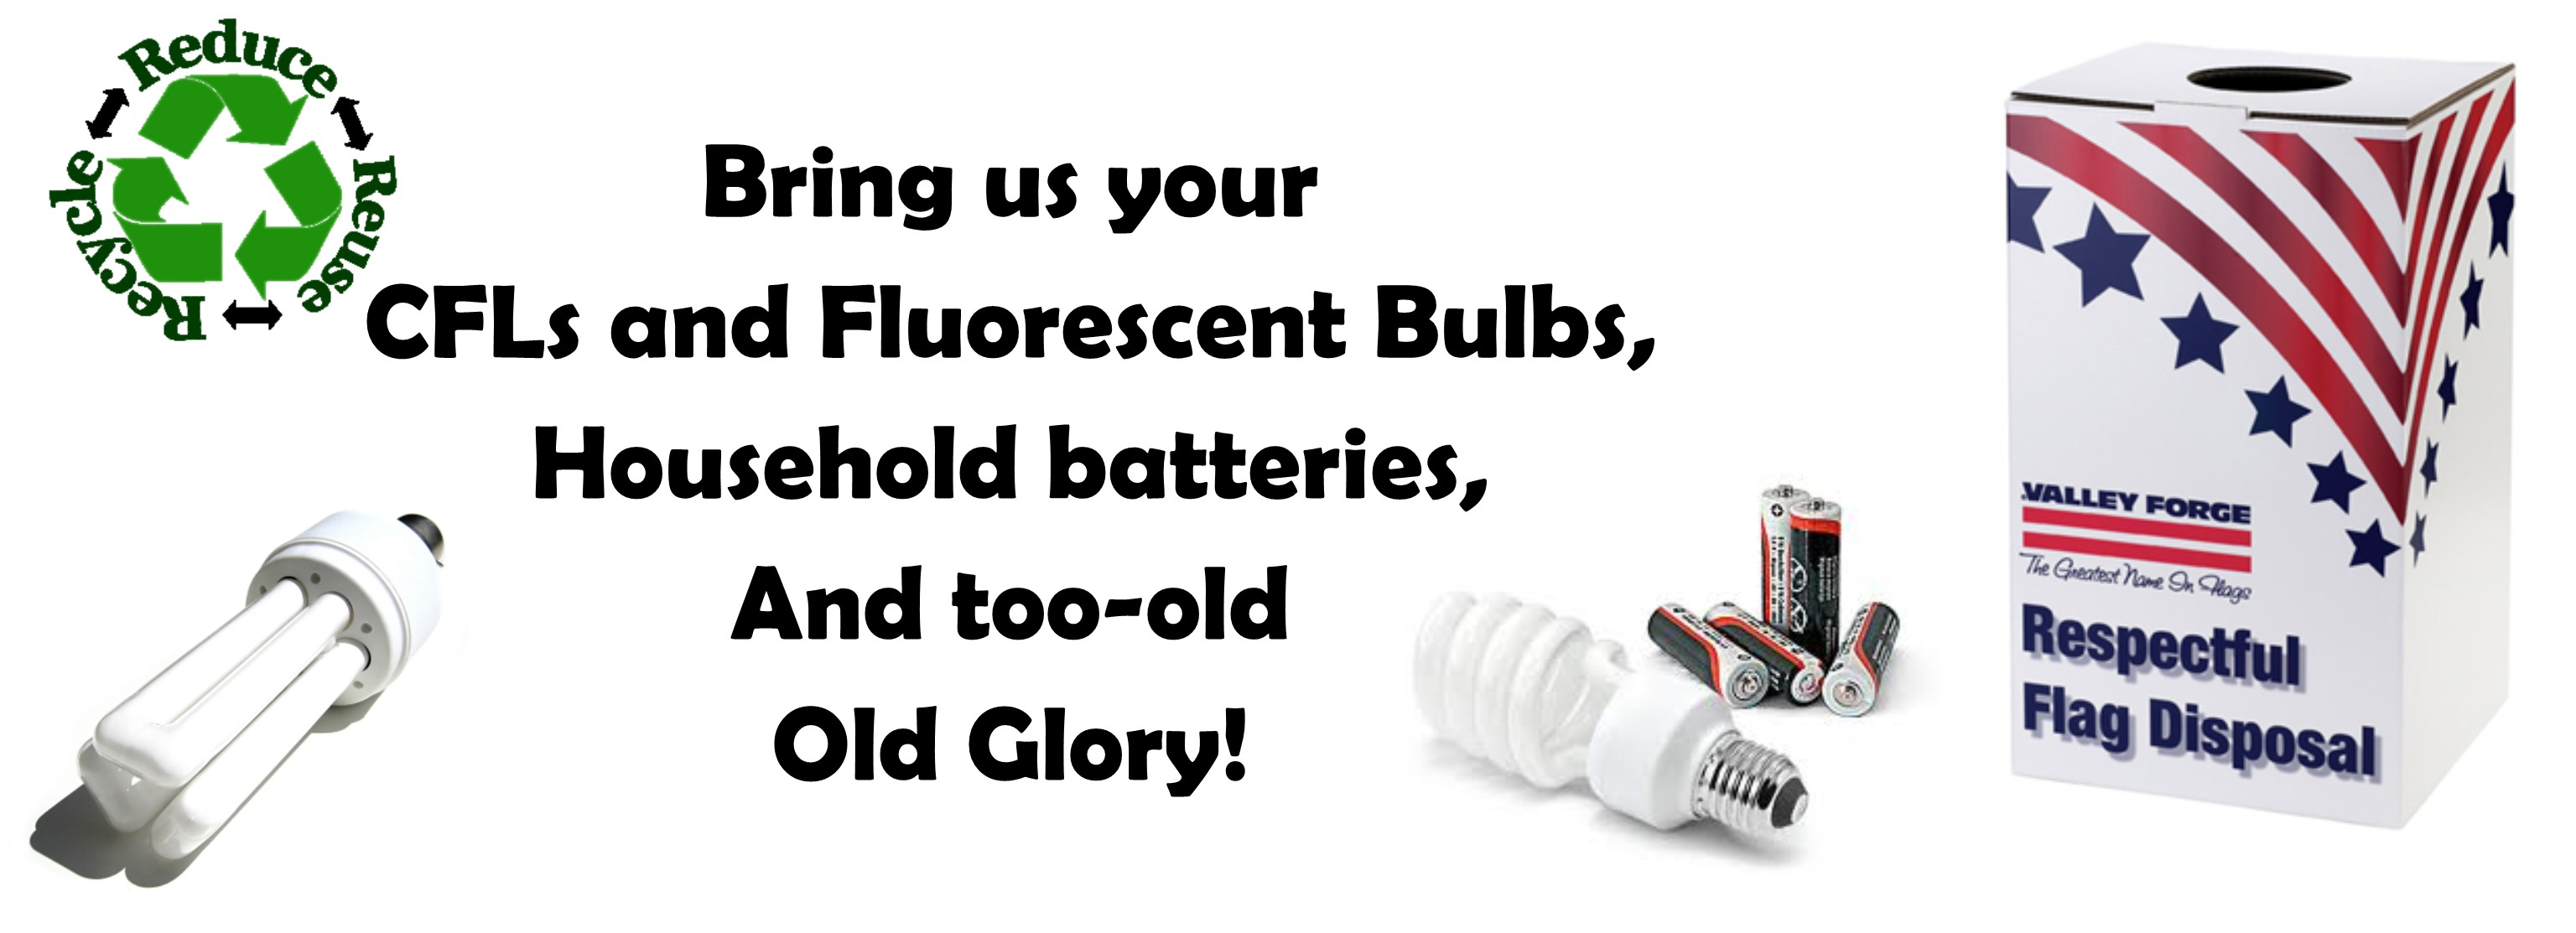 We recycle your CFLs, batteries, and flags